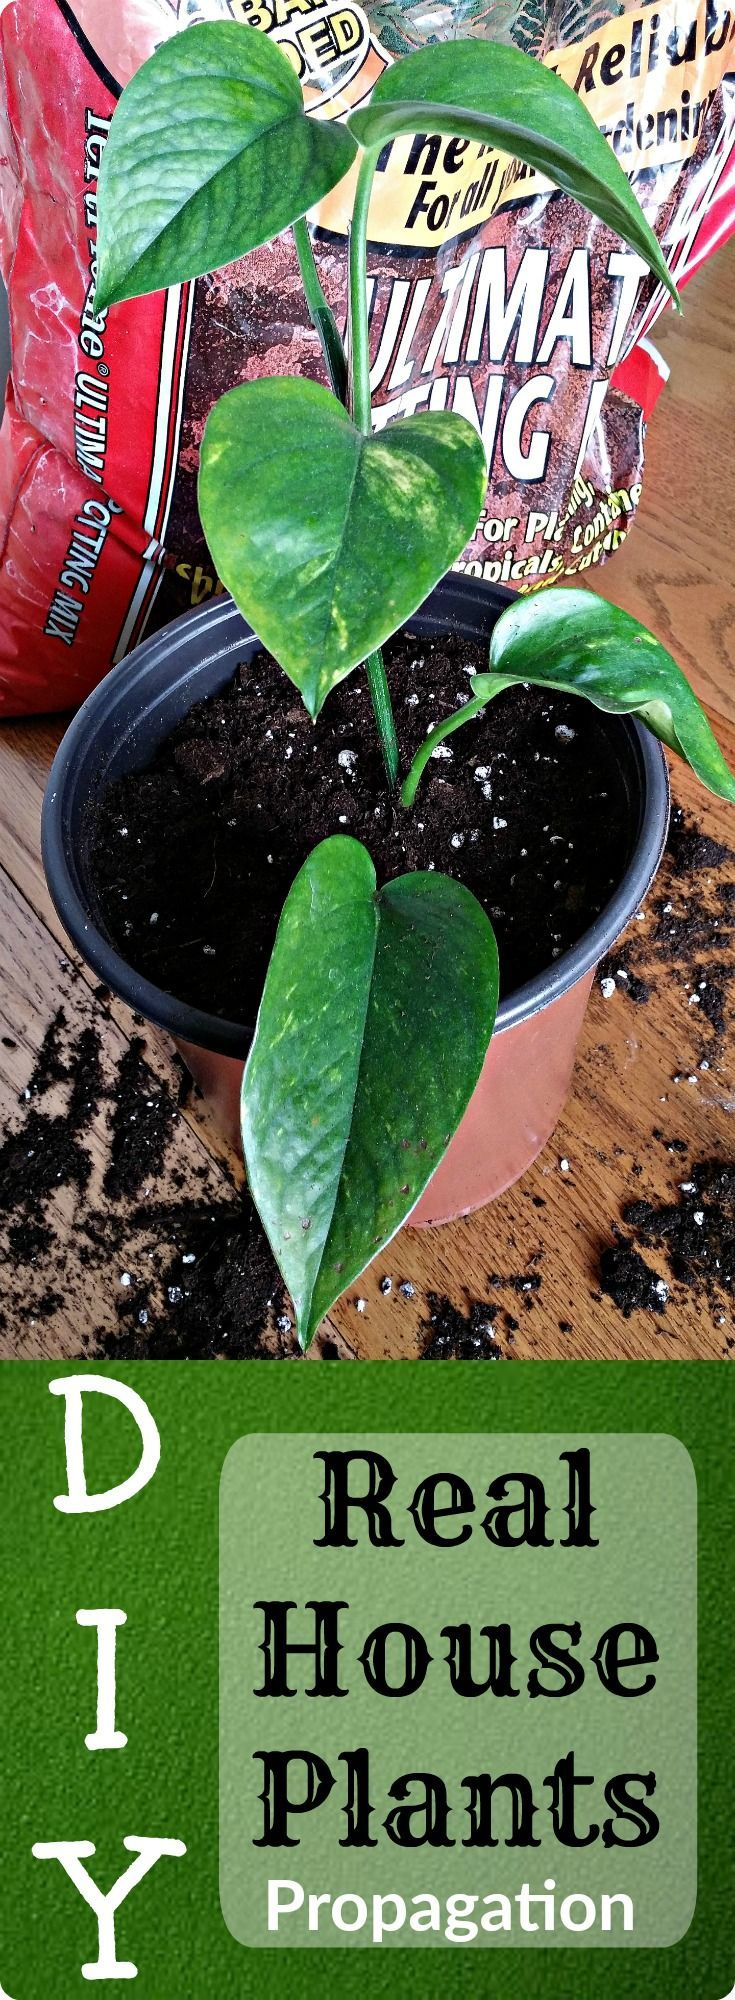 FREE Plants! I use this method for more indoor house plants to decorate my home. DIY natural